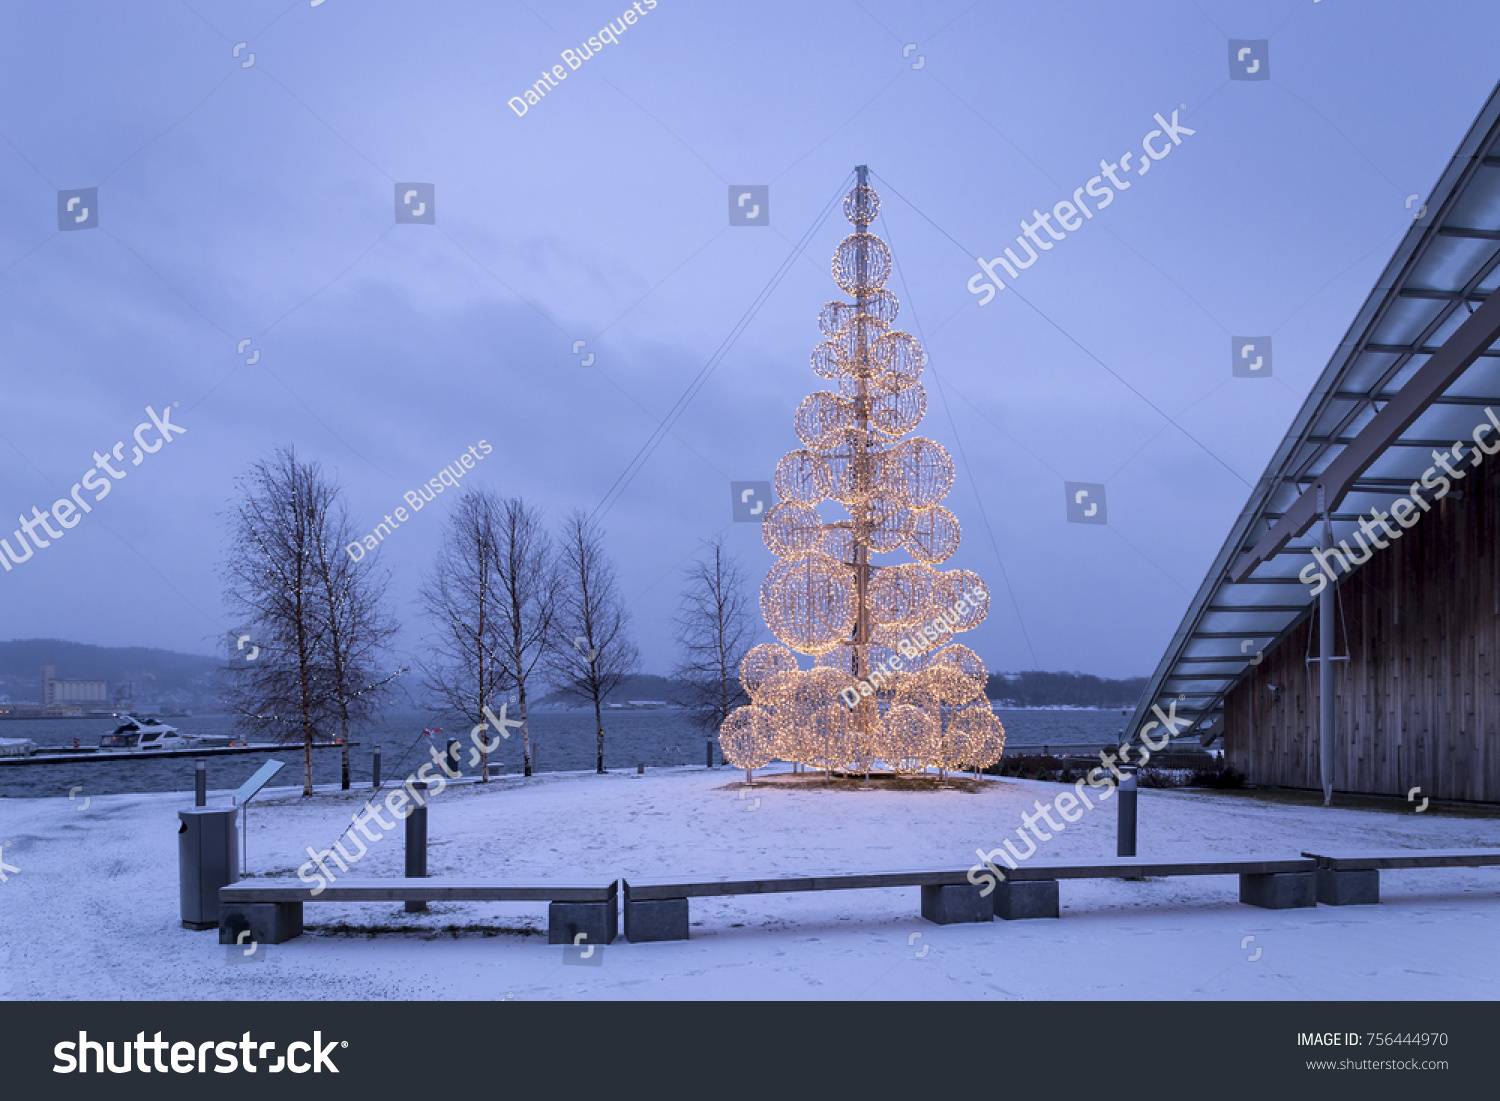 Christmas Decorations City Oslo Norway On Stock Photo (Edit Now ...